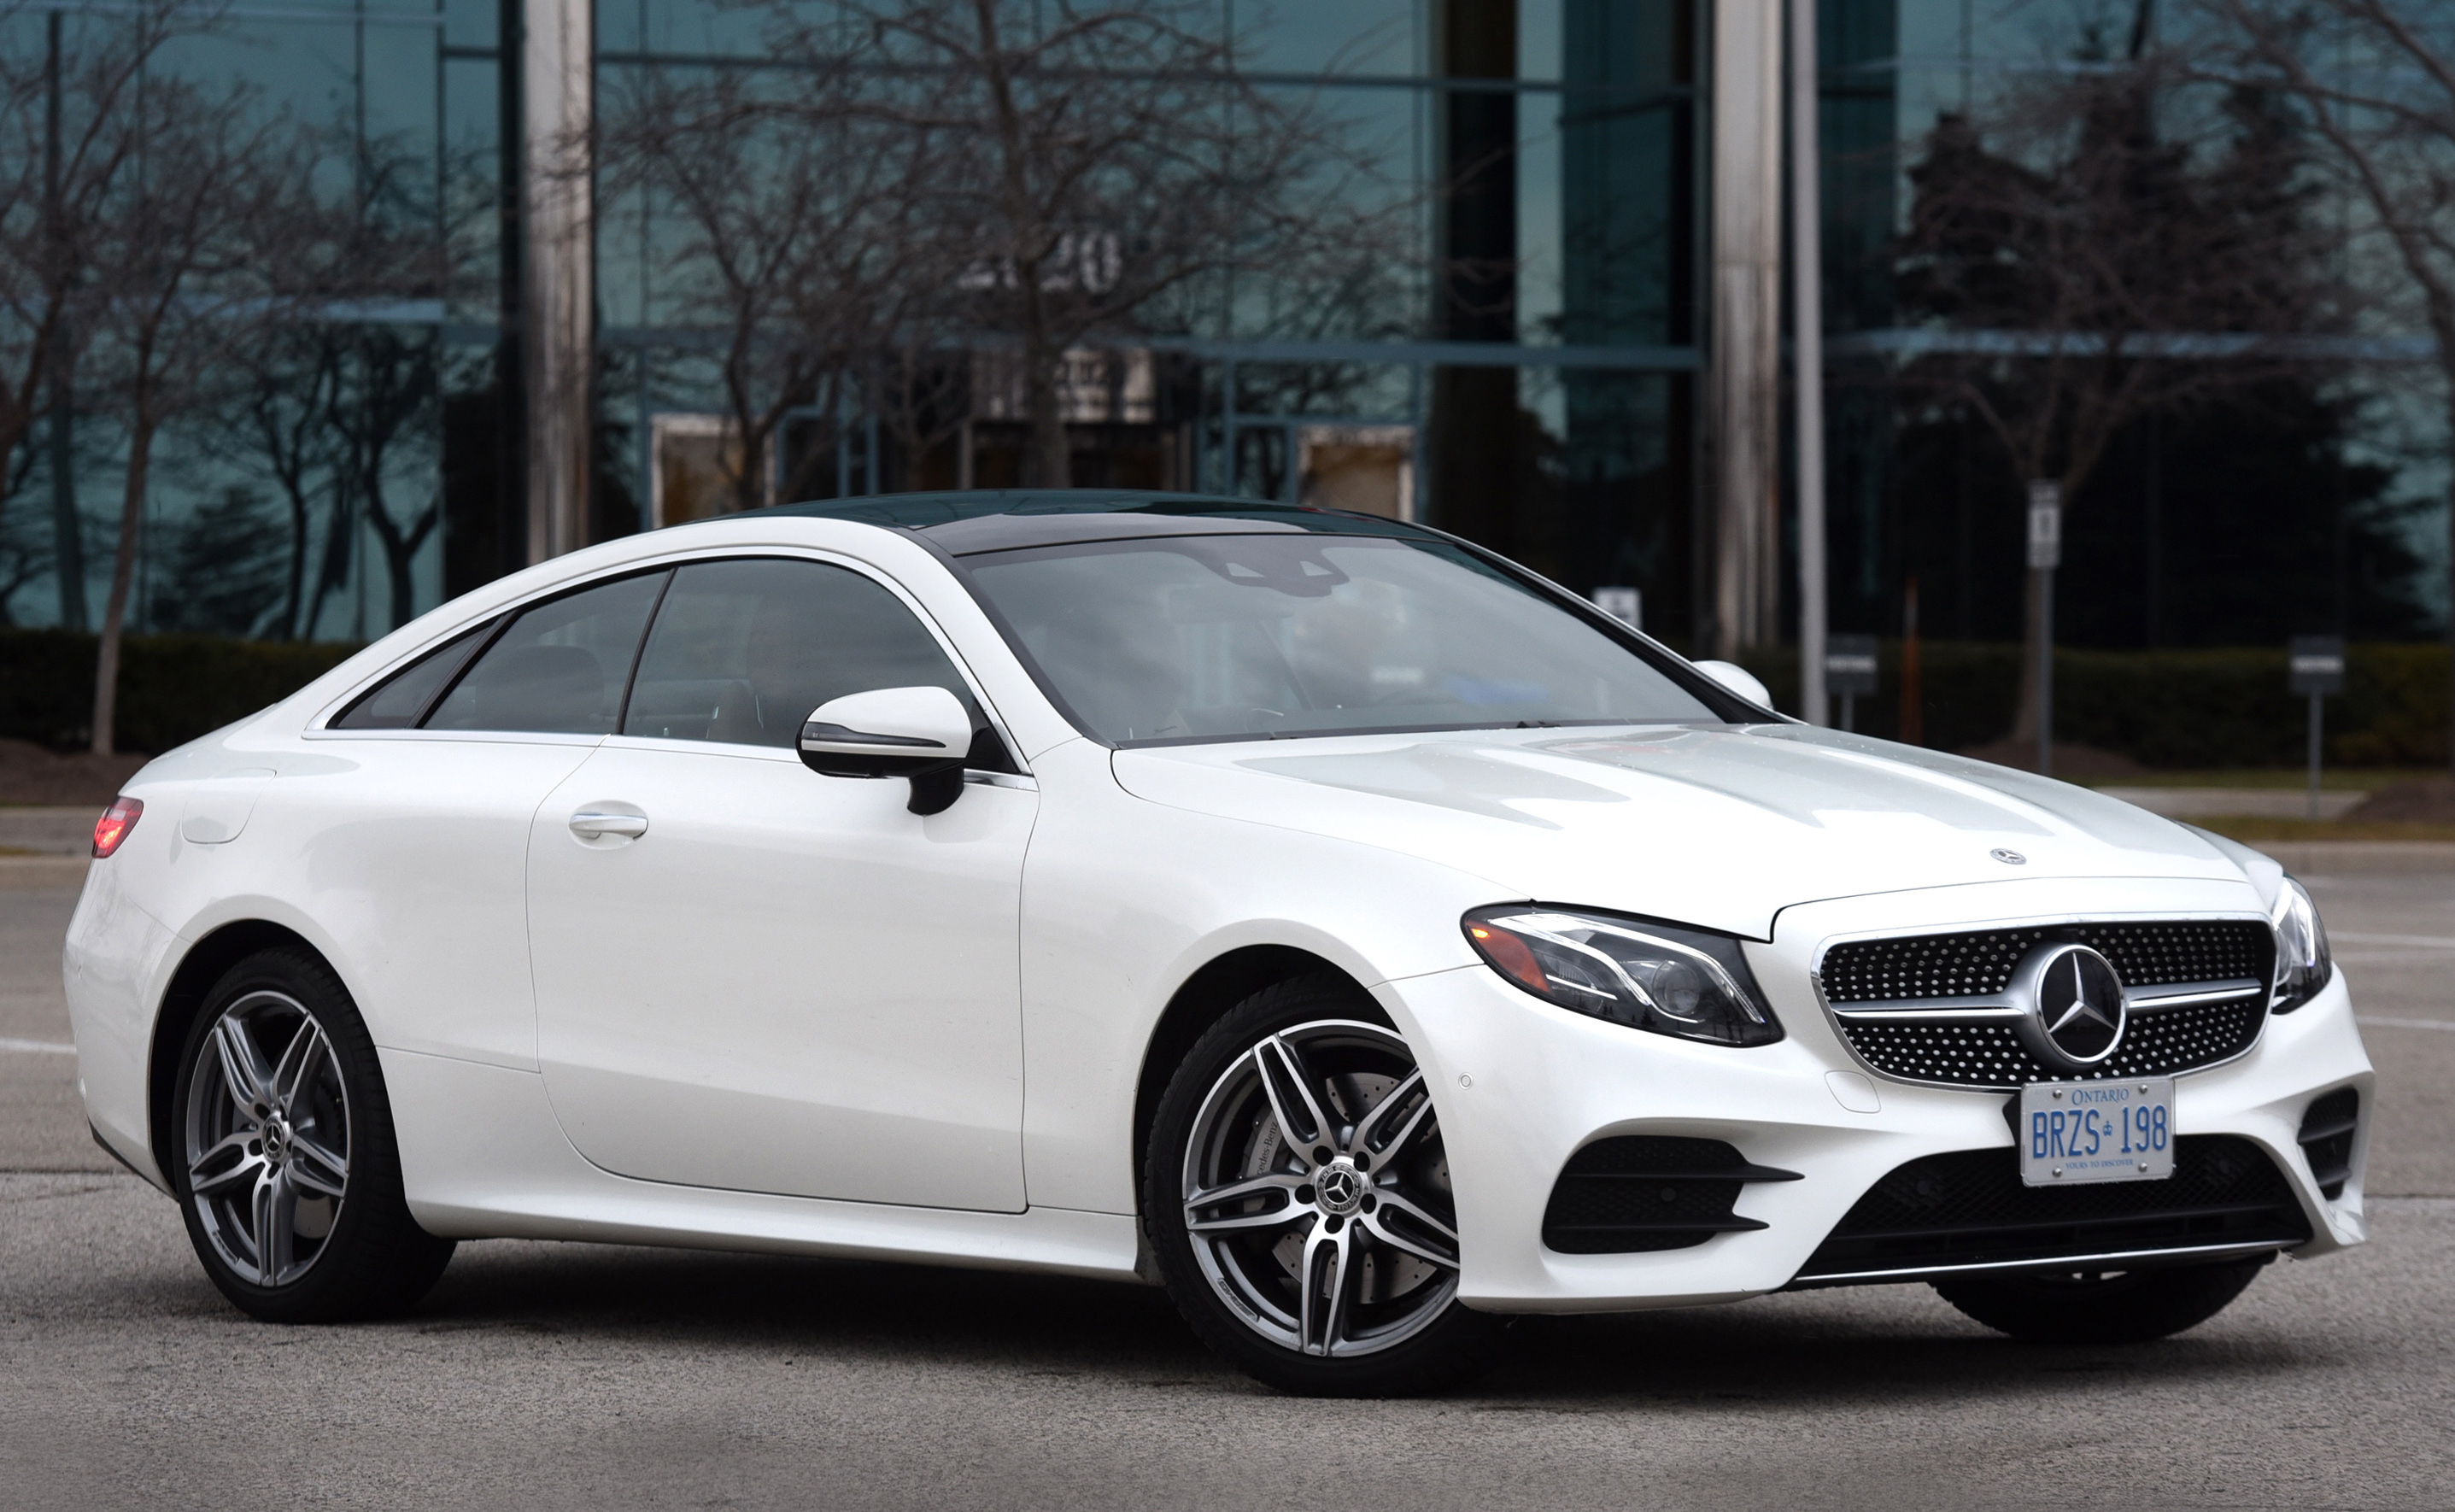 2018 Mercedes-Benz E 400 4Matic Coupe Review